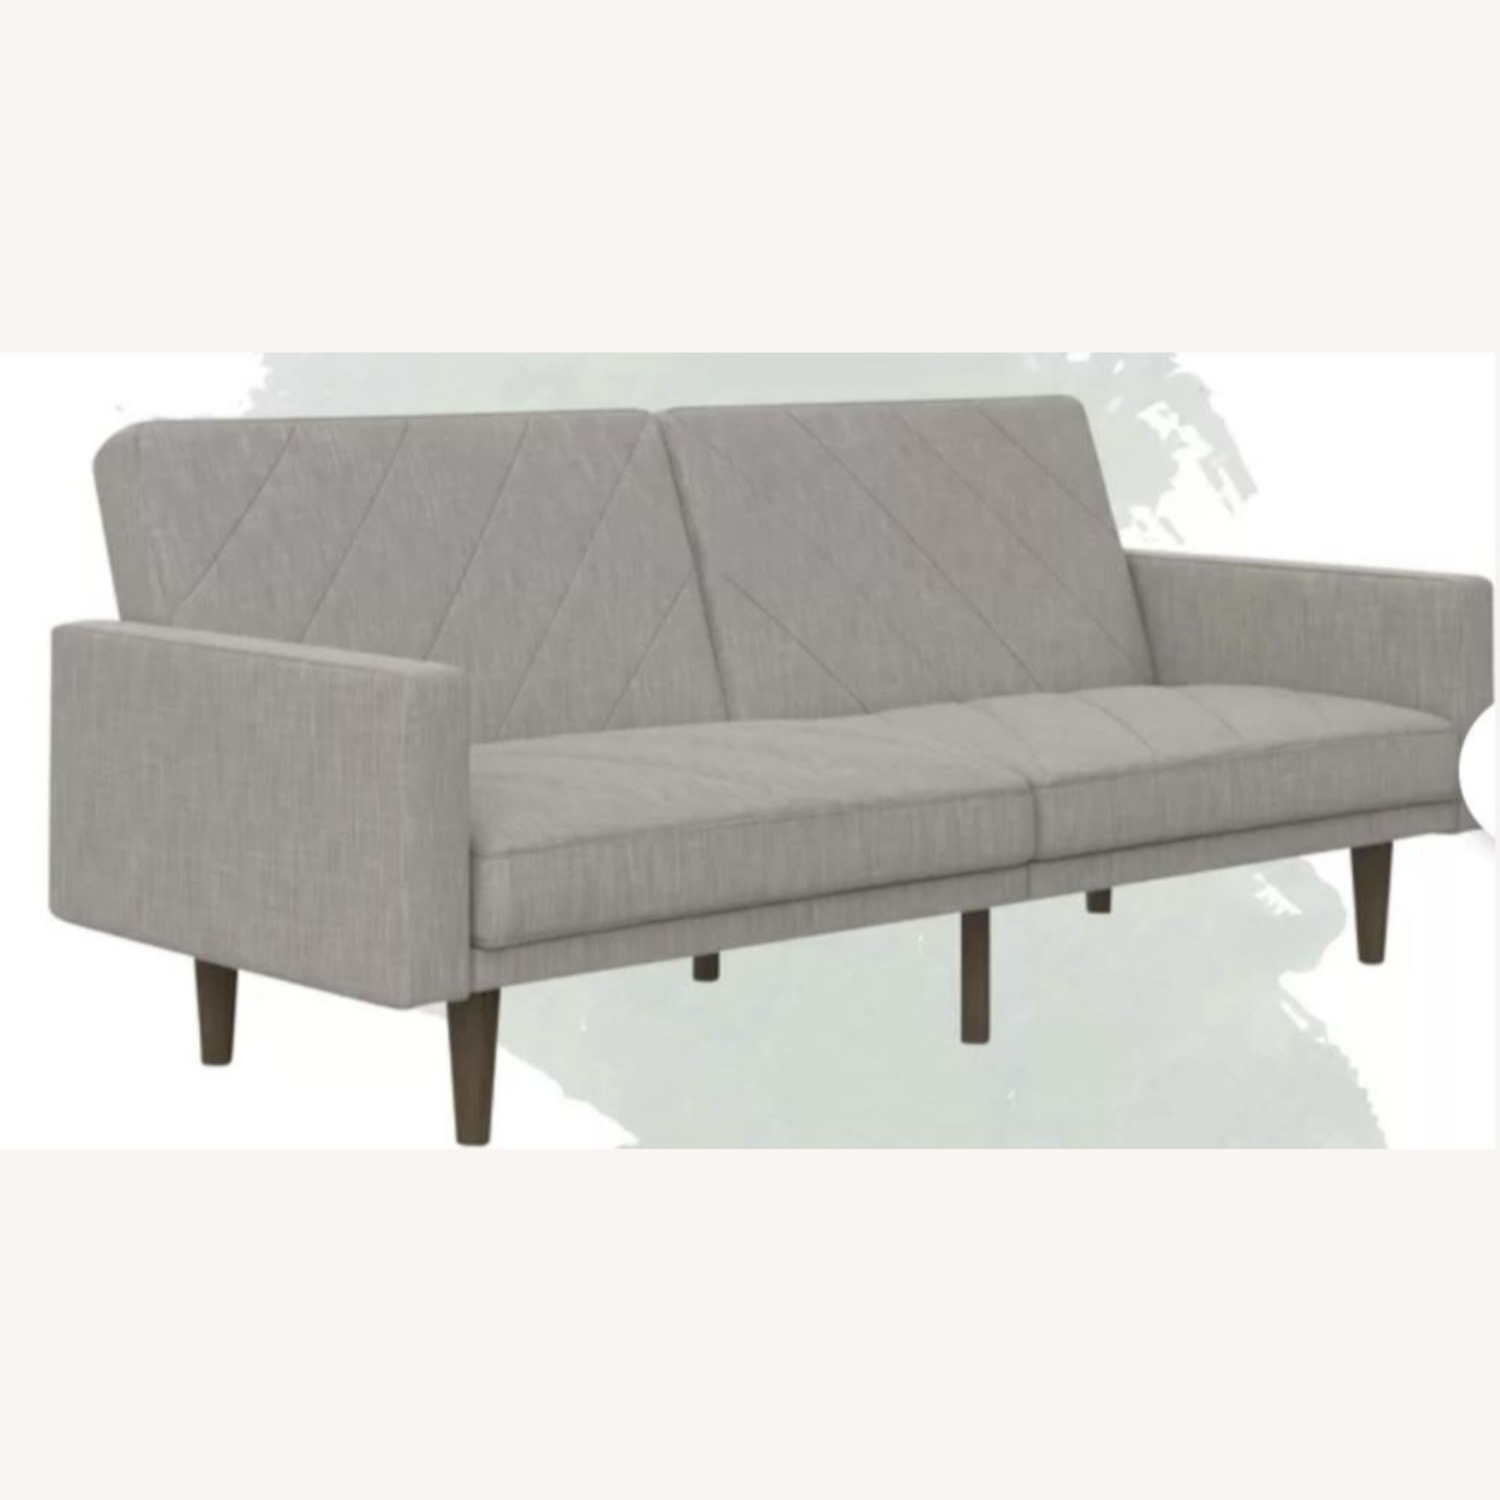 DHP Furniture Austen Twin Split Back Convertible Sofa - image-1